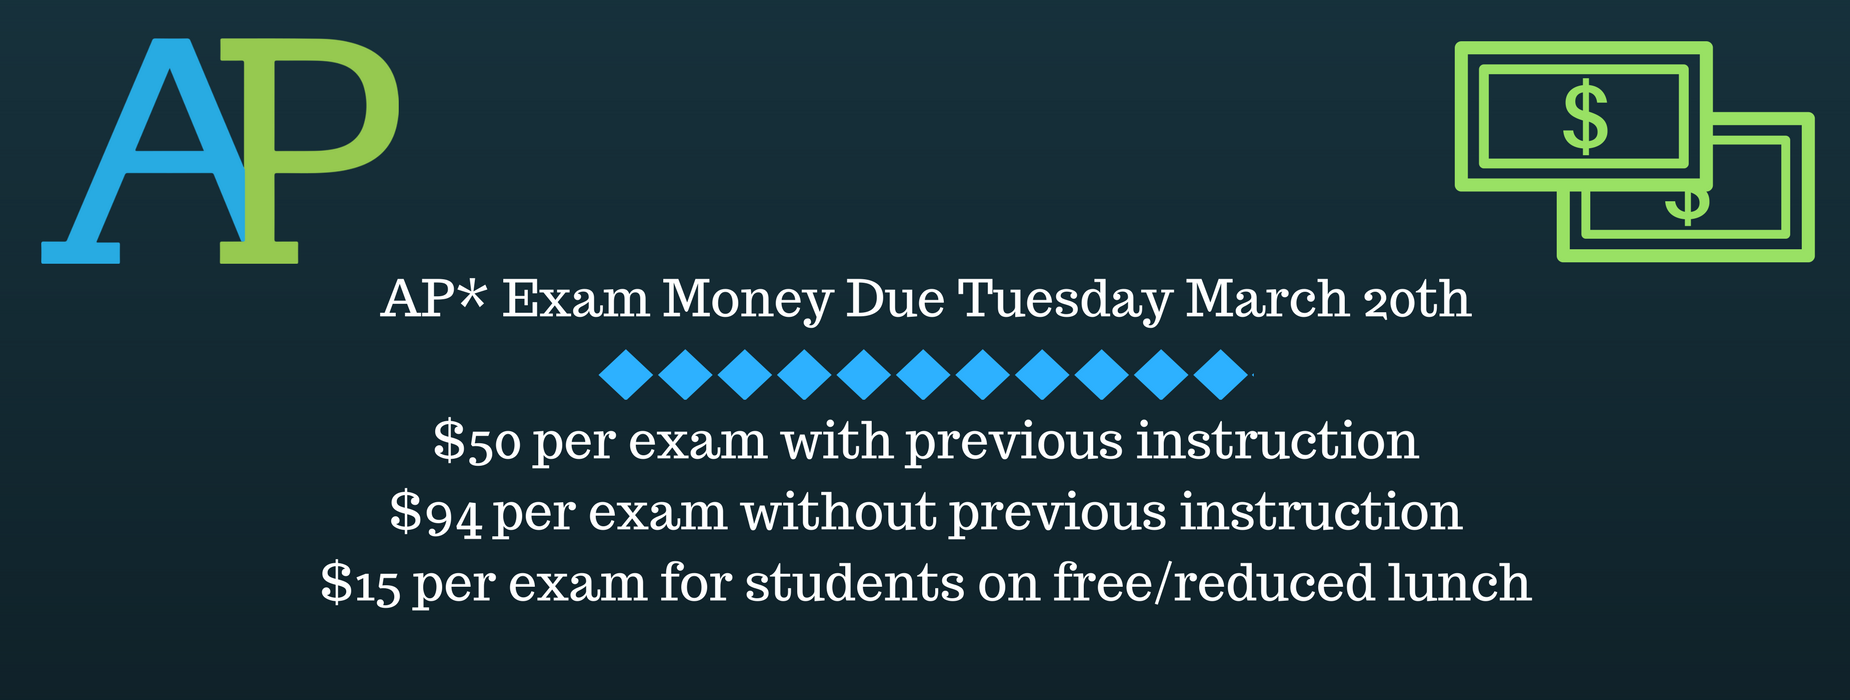 AP Exam money due Tuesday, March 20th